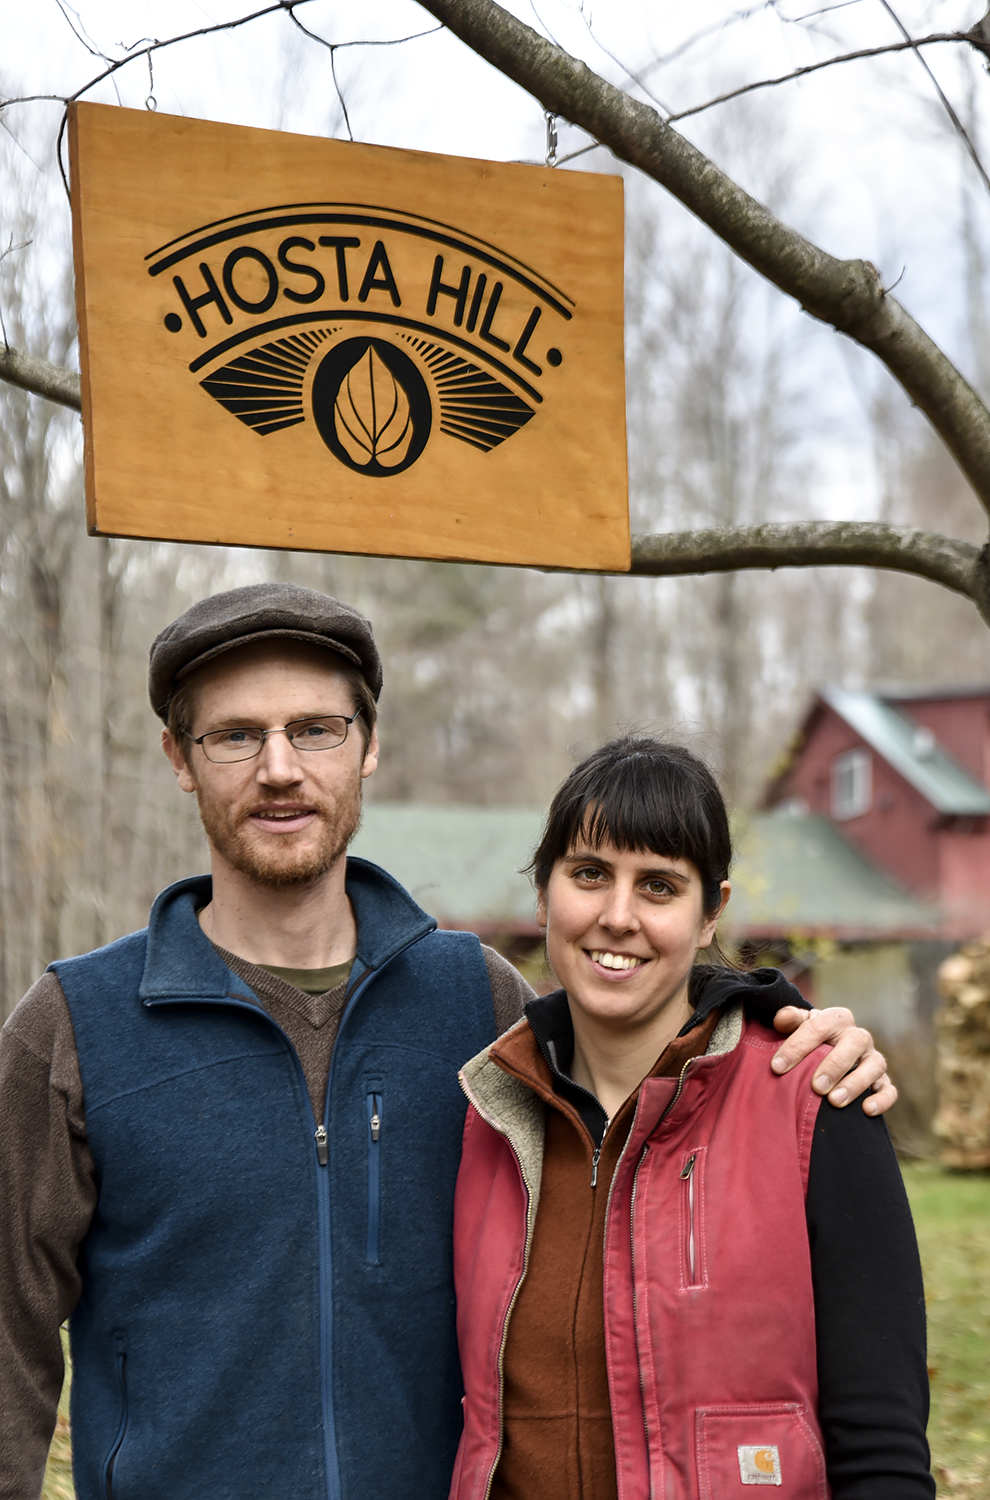 Hosta Hill co-founders Abe Hunrichs and Maddie Elling